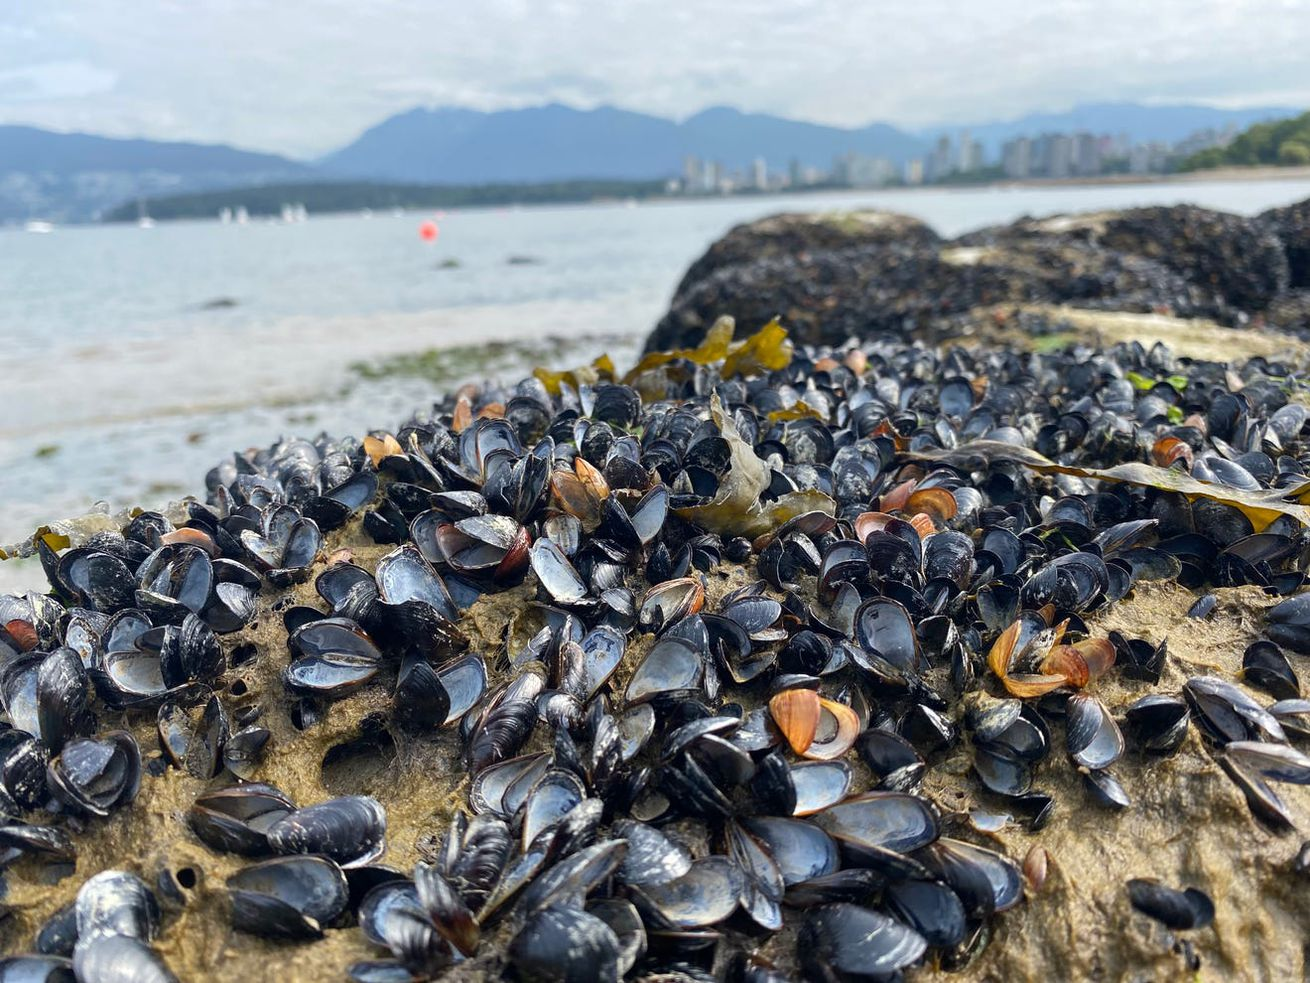 A bed of mussels cooked alive by extreme heat on the shoreline in Vancouver, British Columbia. Their shells are popped open, and their innards are dried out and picked over by scavengers.